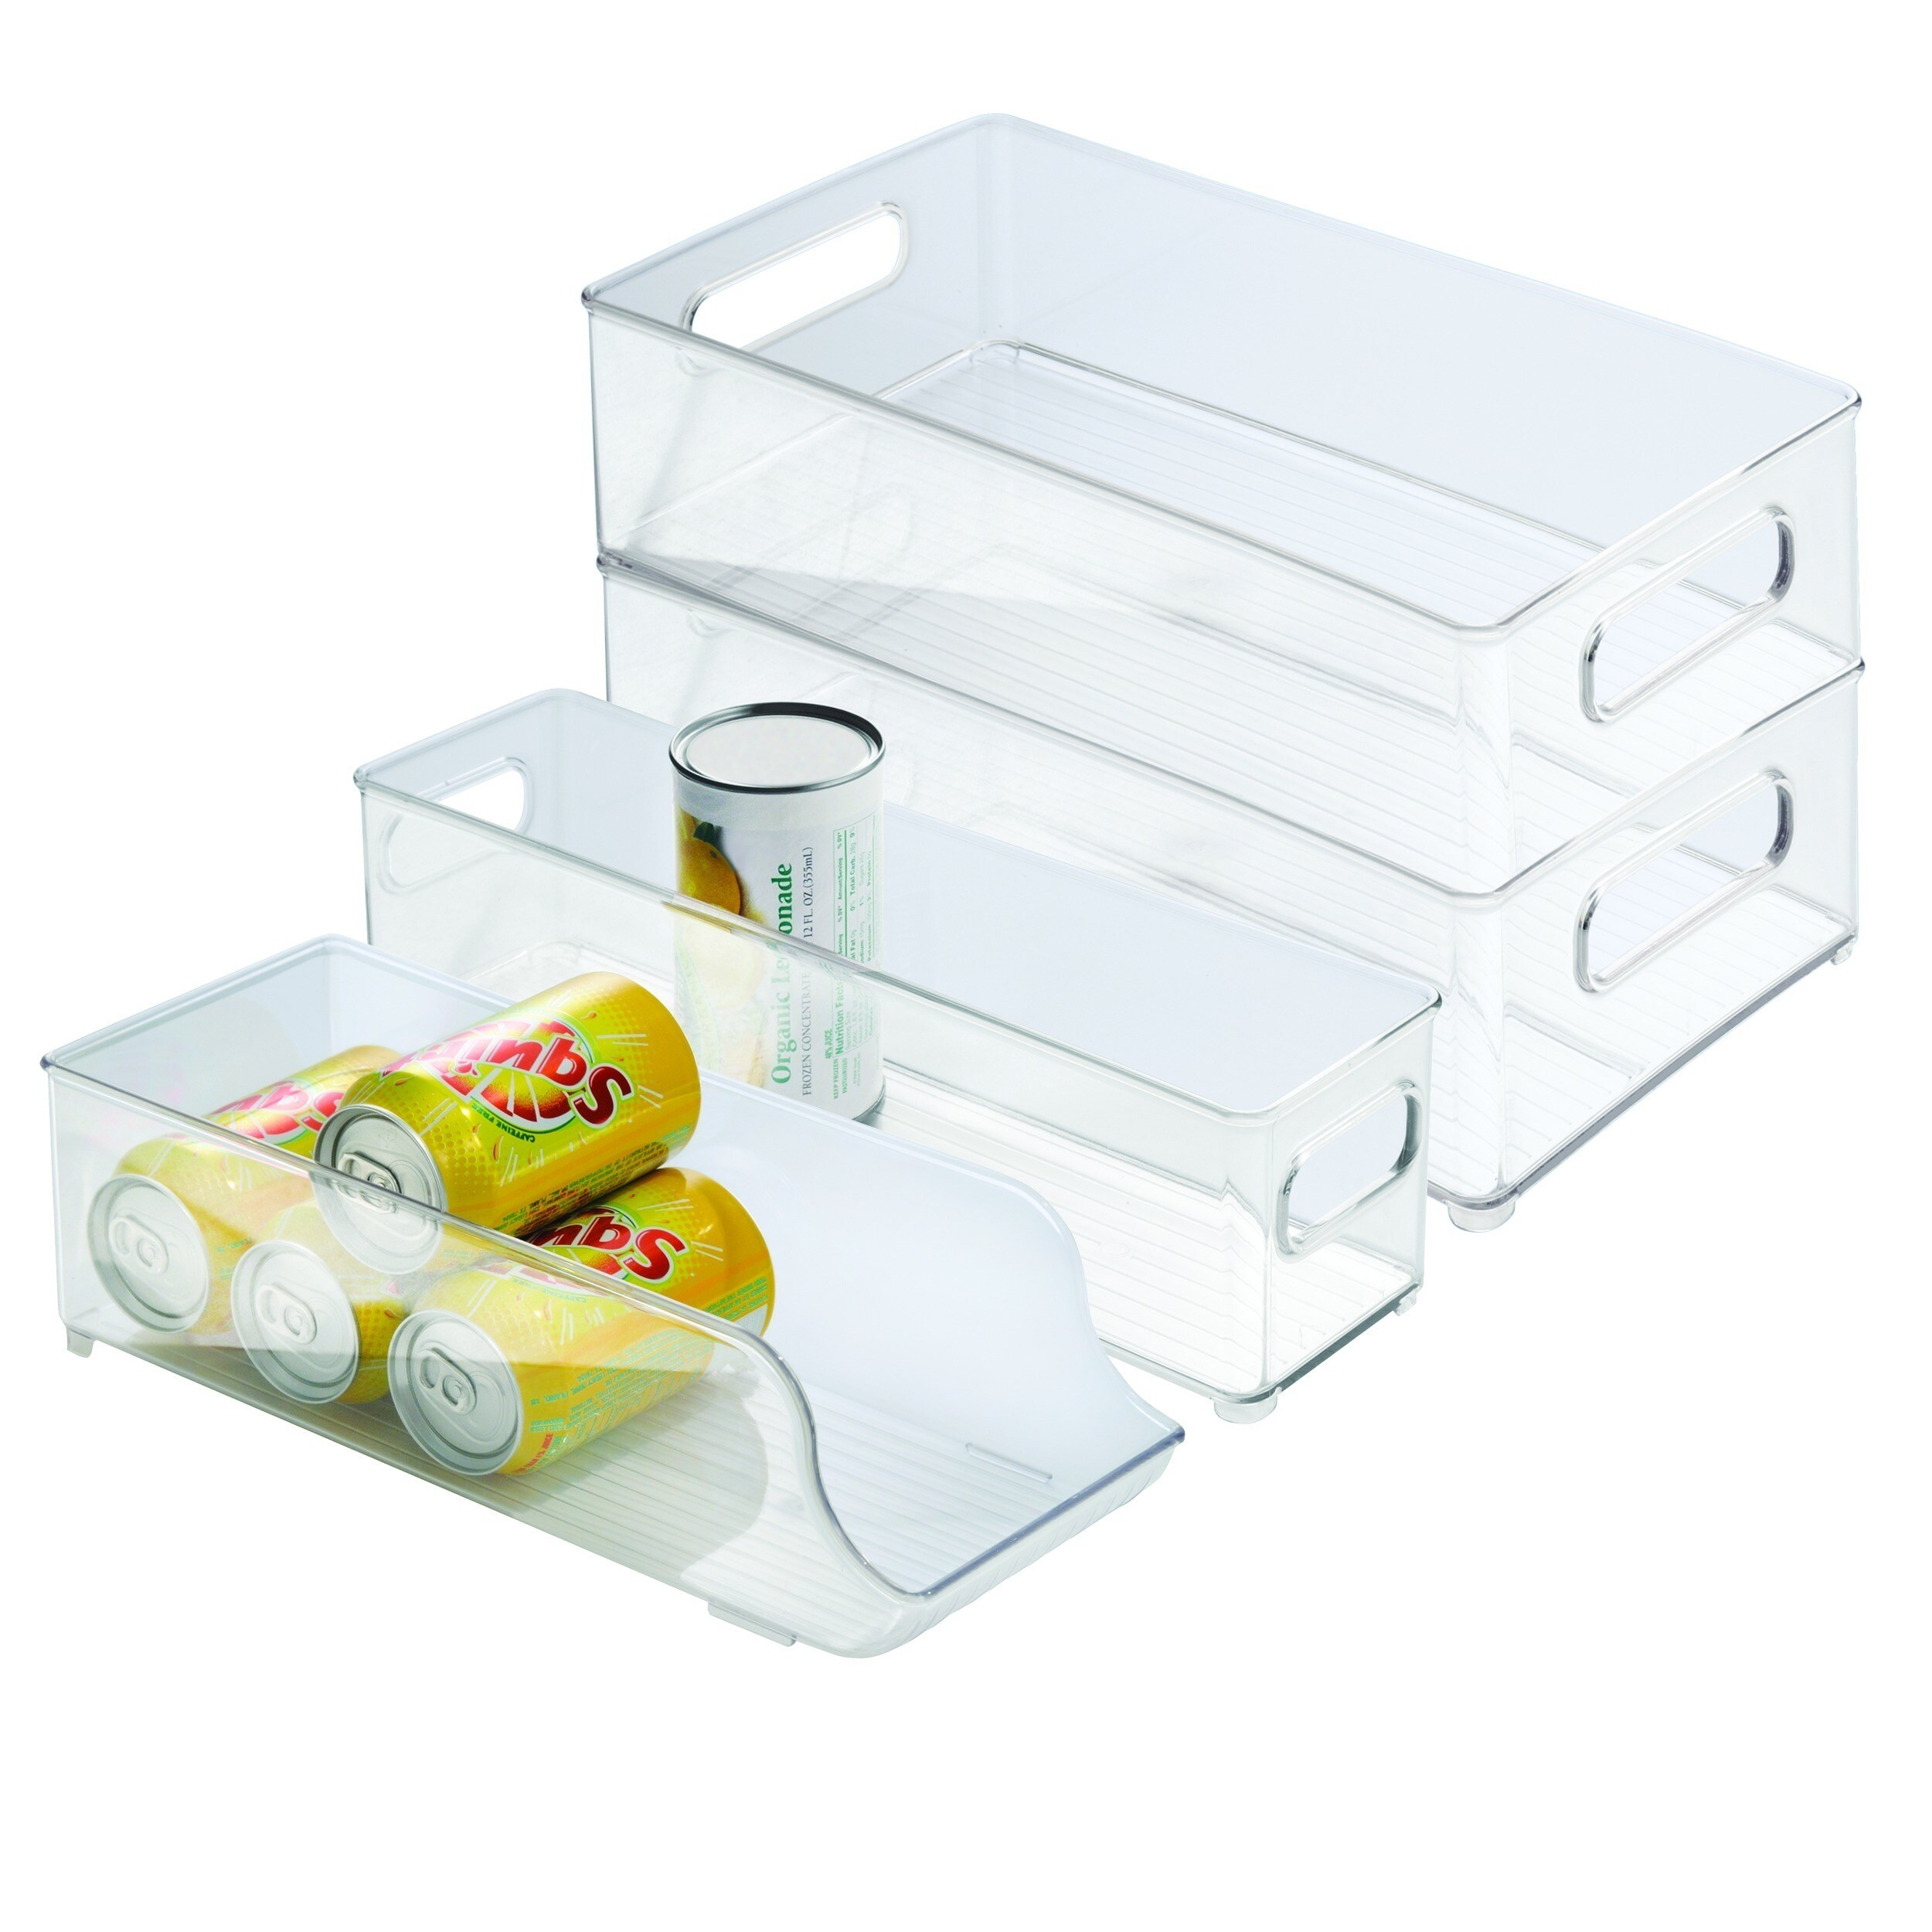 Shop Interdesign 4 piece Fridge and Freezer Storage Bins Free